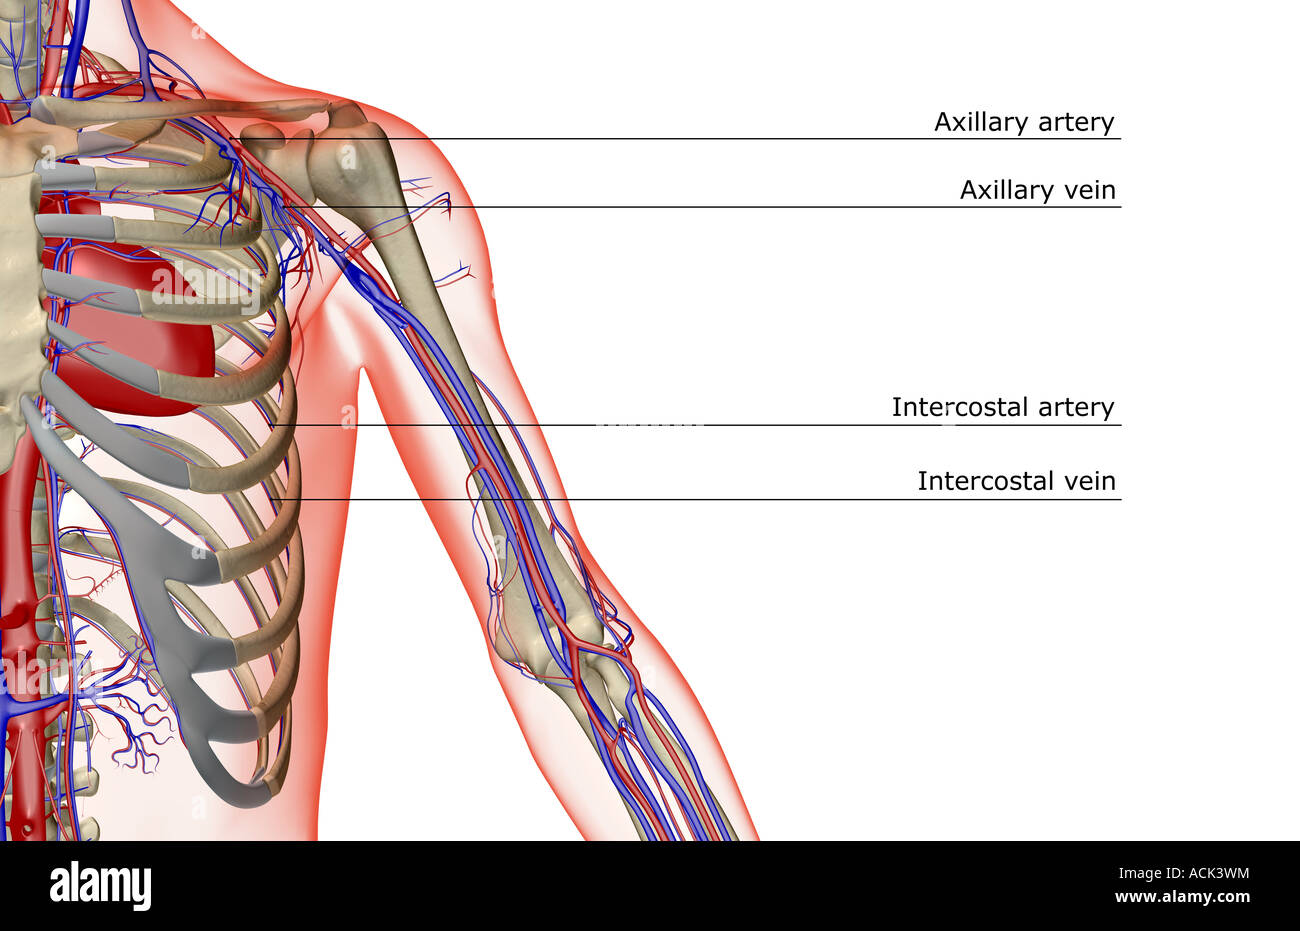 Veins Arm Stock Photos & Veins Arm Stock Images - Alamy